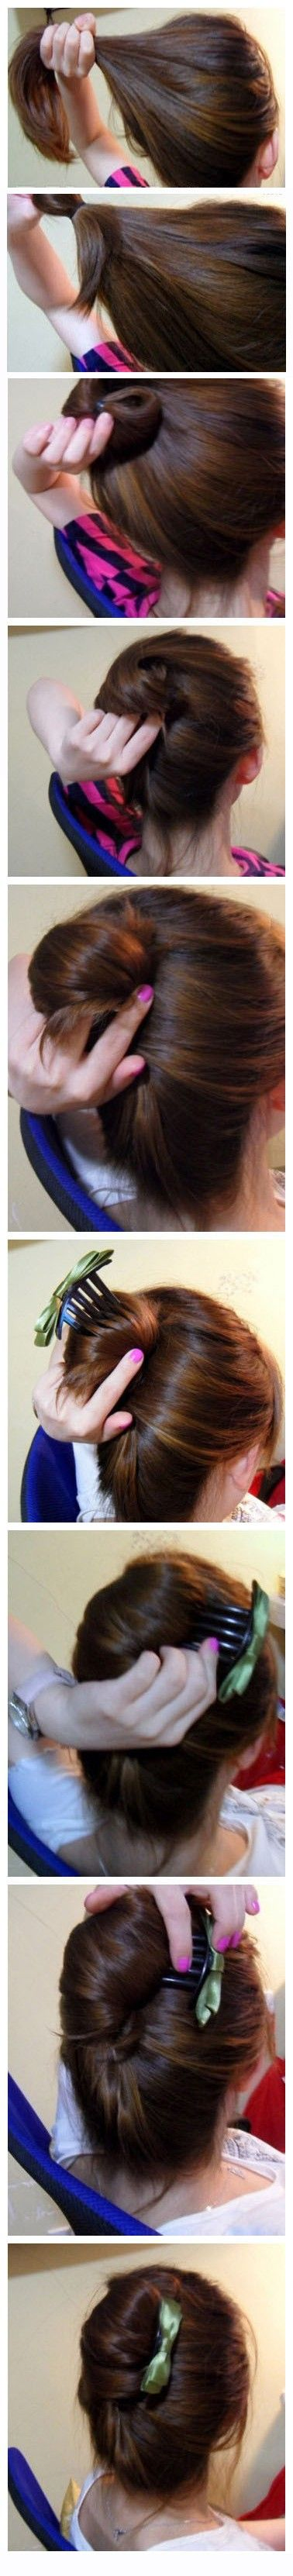 The French Twist never looked so easy!